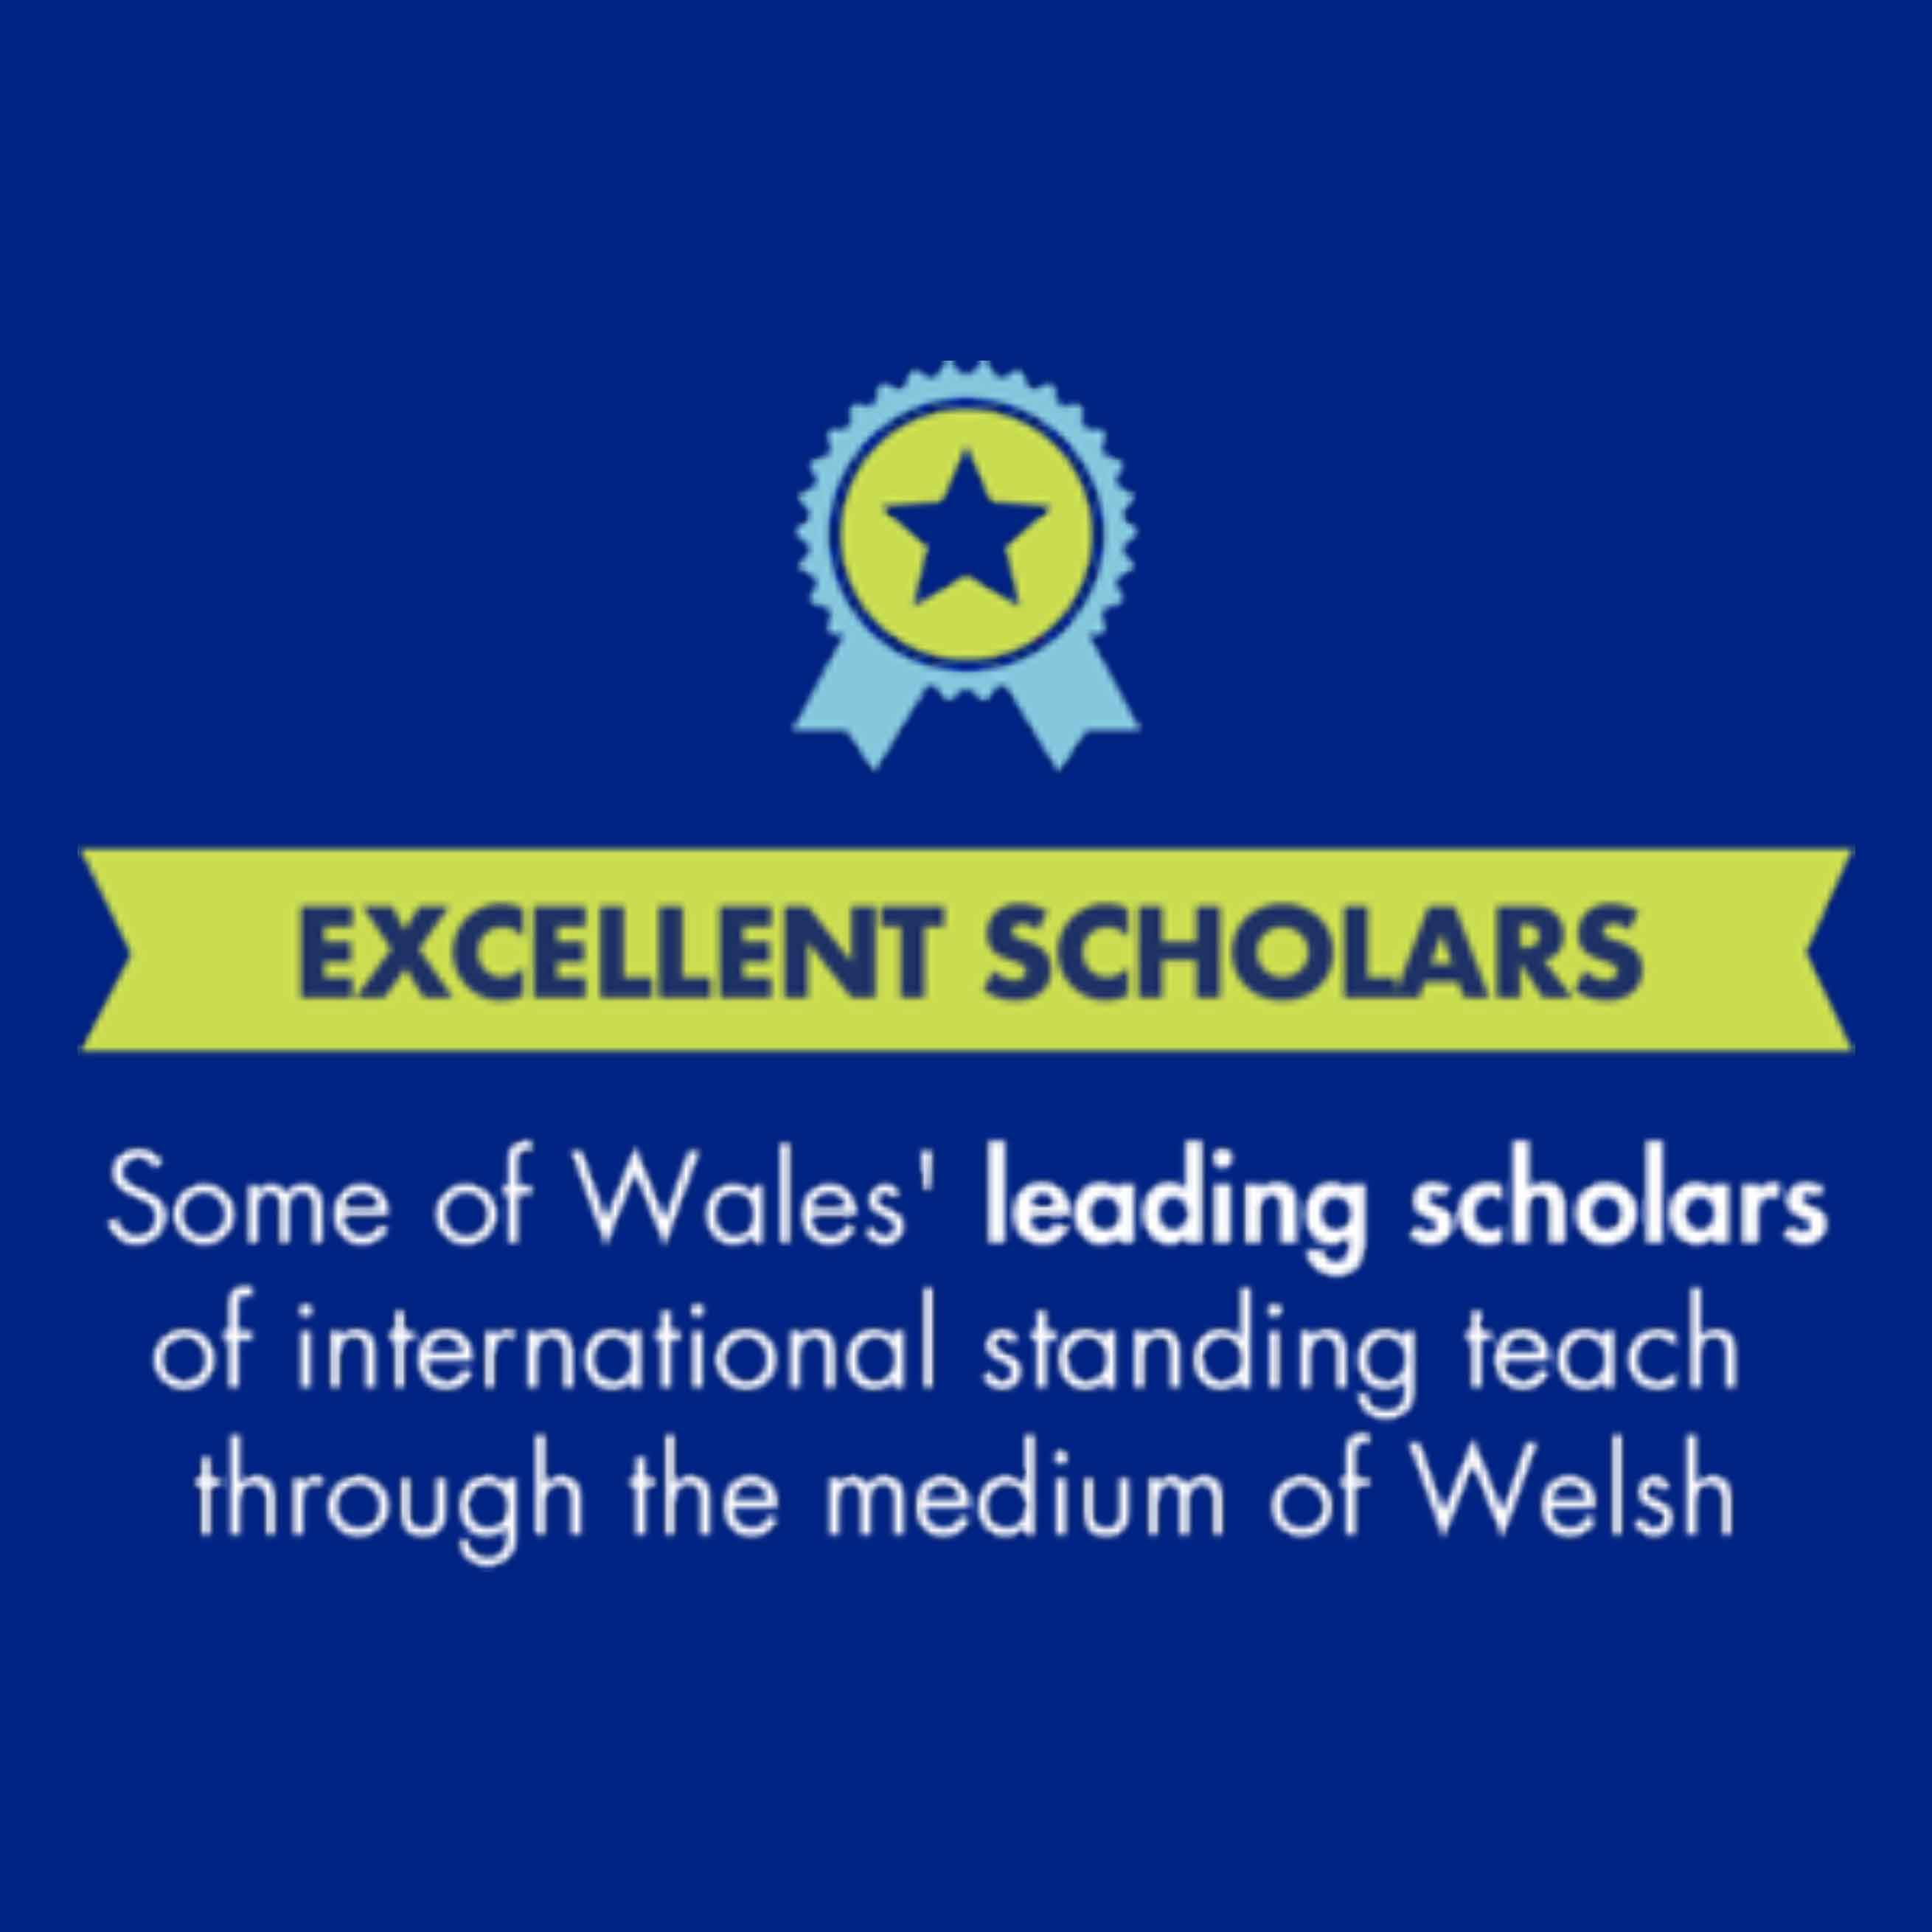 Some of Wales' leading scholars of international standing teach through the medium of Welsh